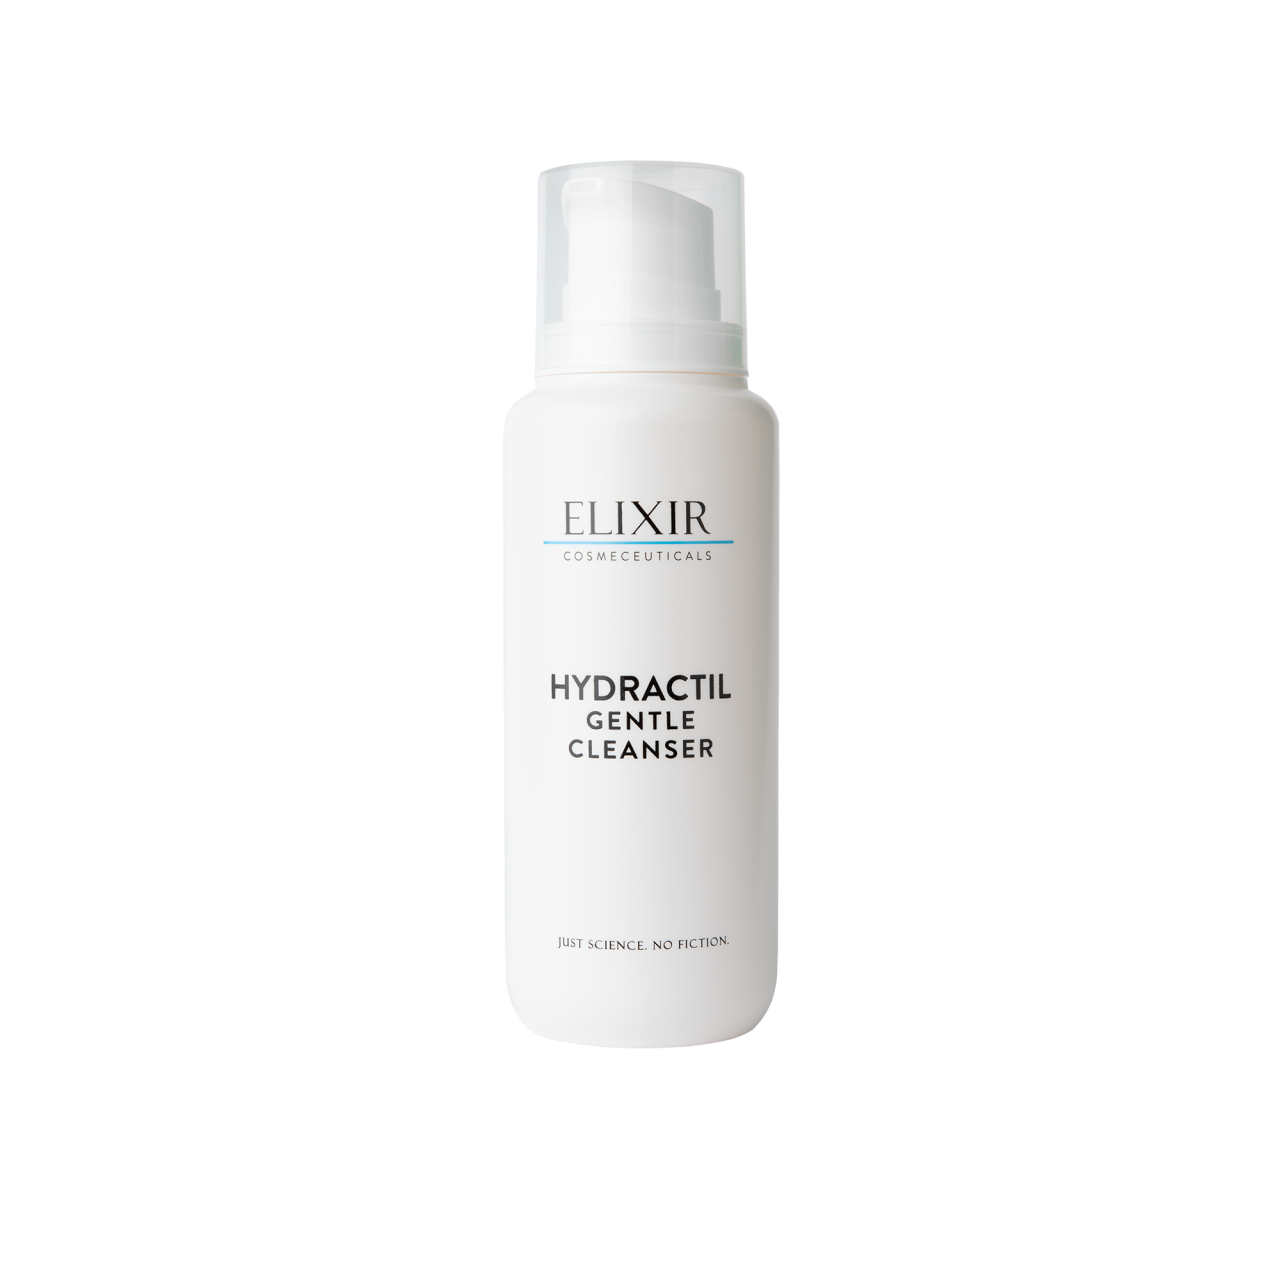 Hydractil Gentle Cleanser